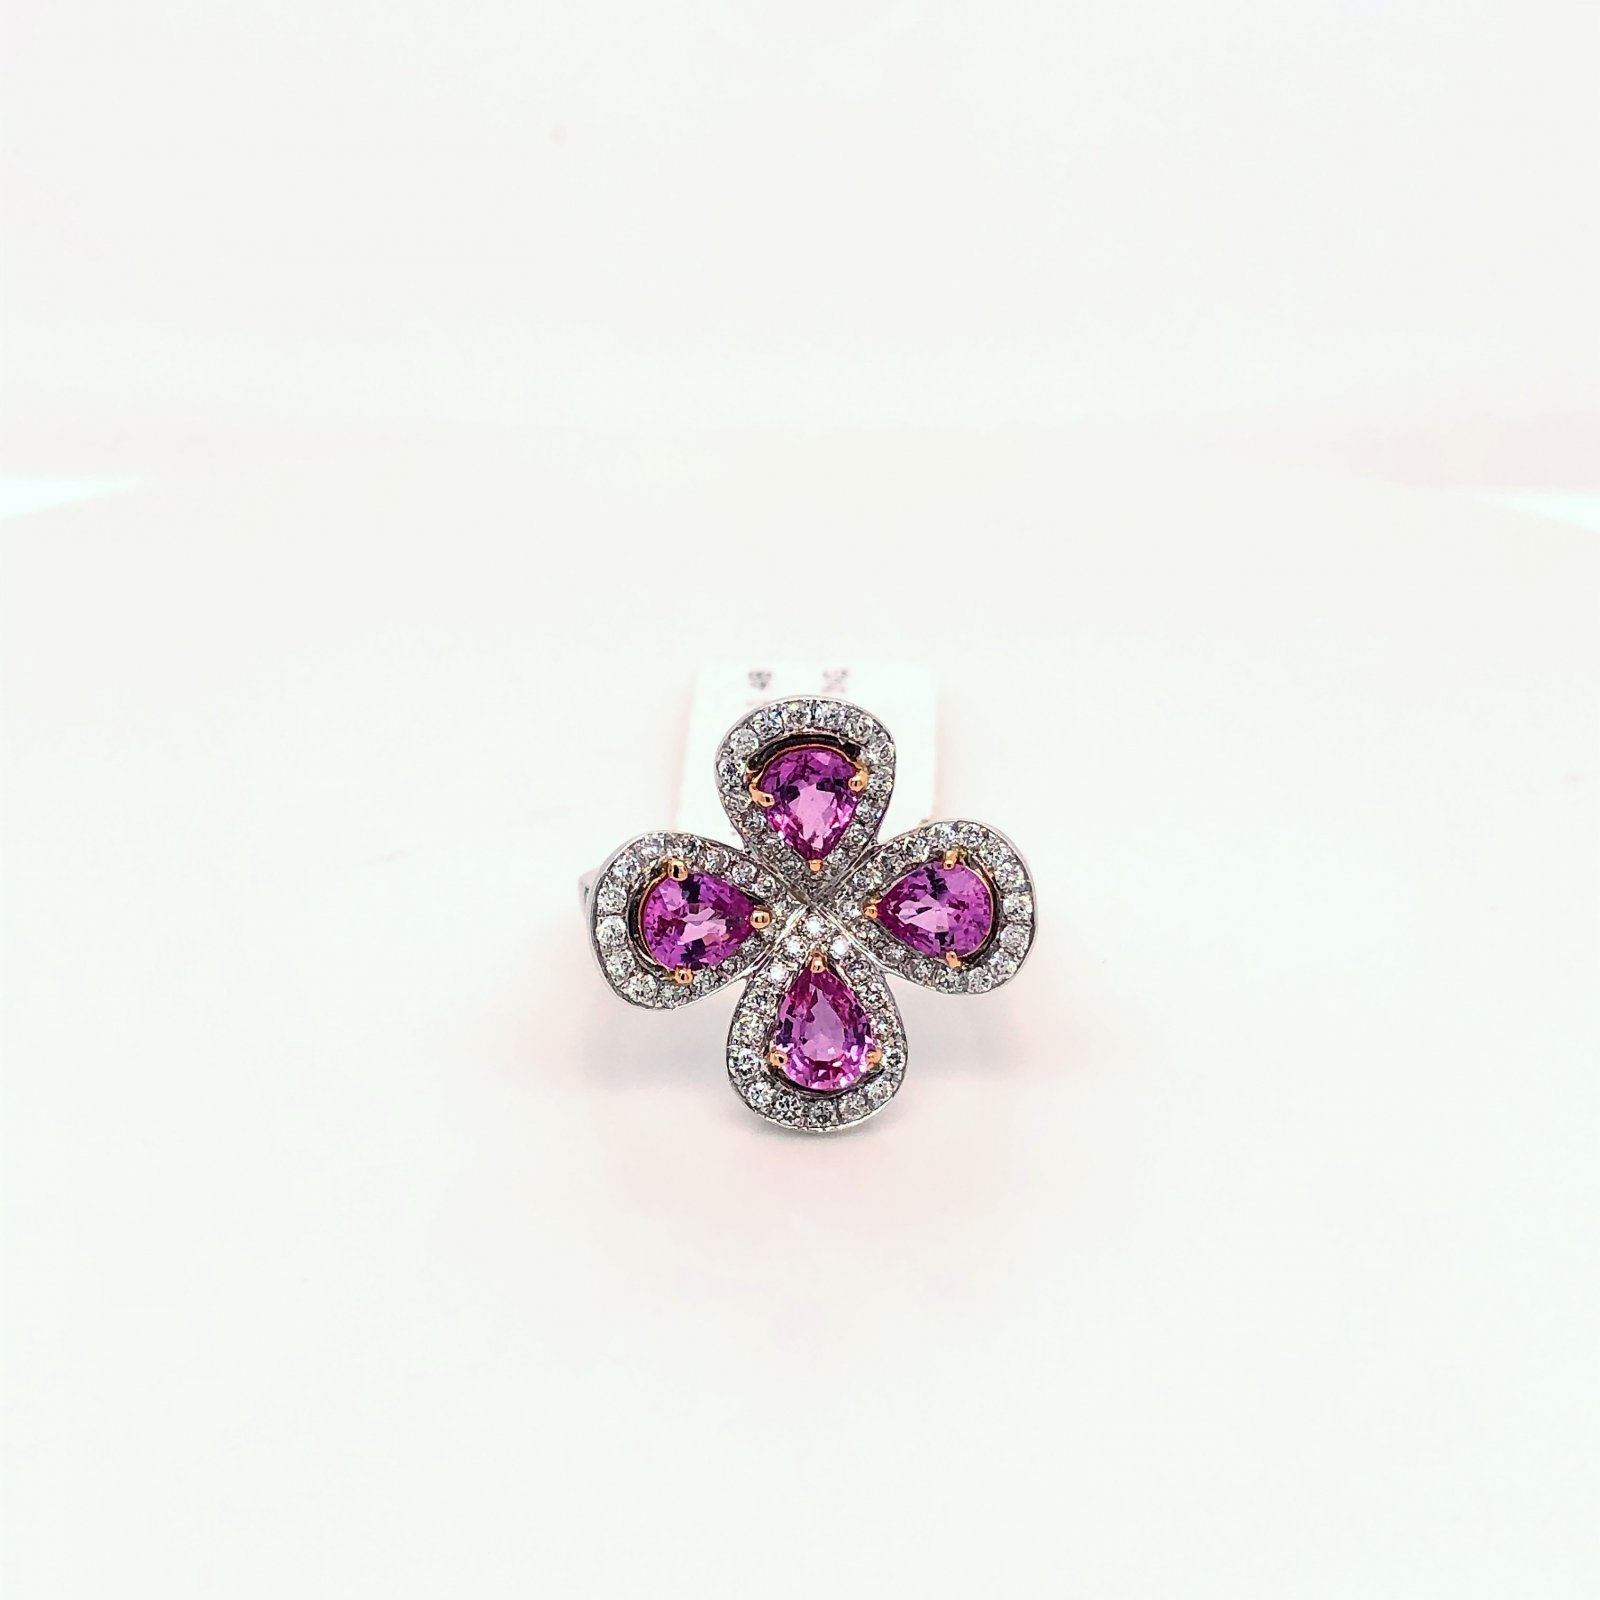 1.48tcw Pink Sapphire and Diamond Flower RIng set in 18k White Gold